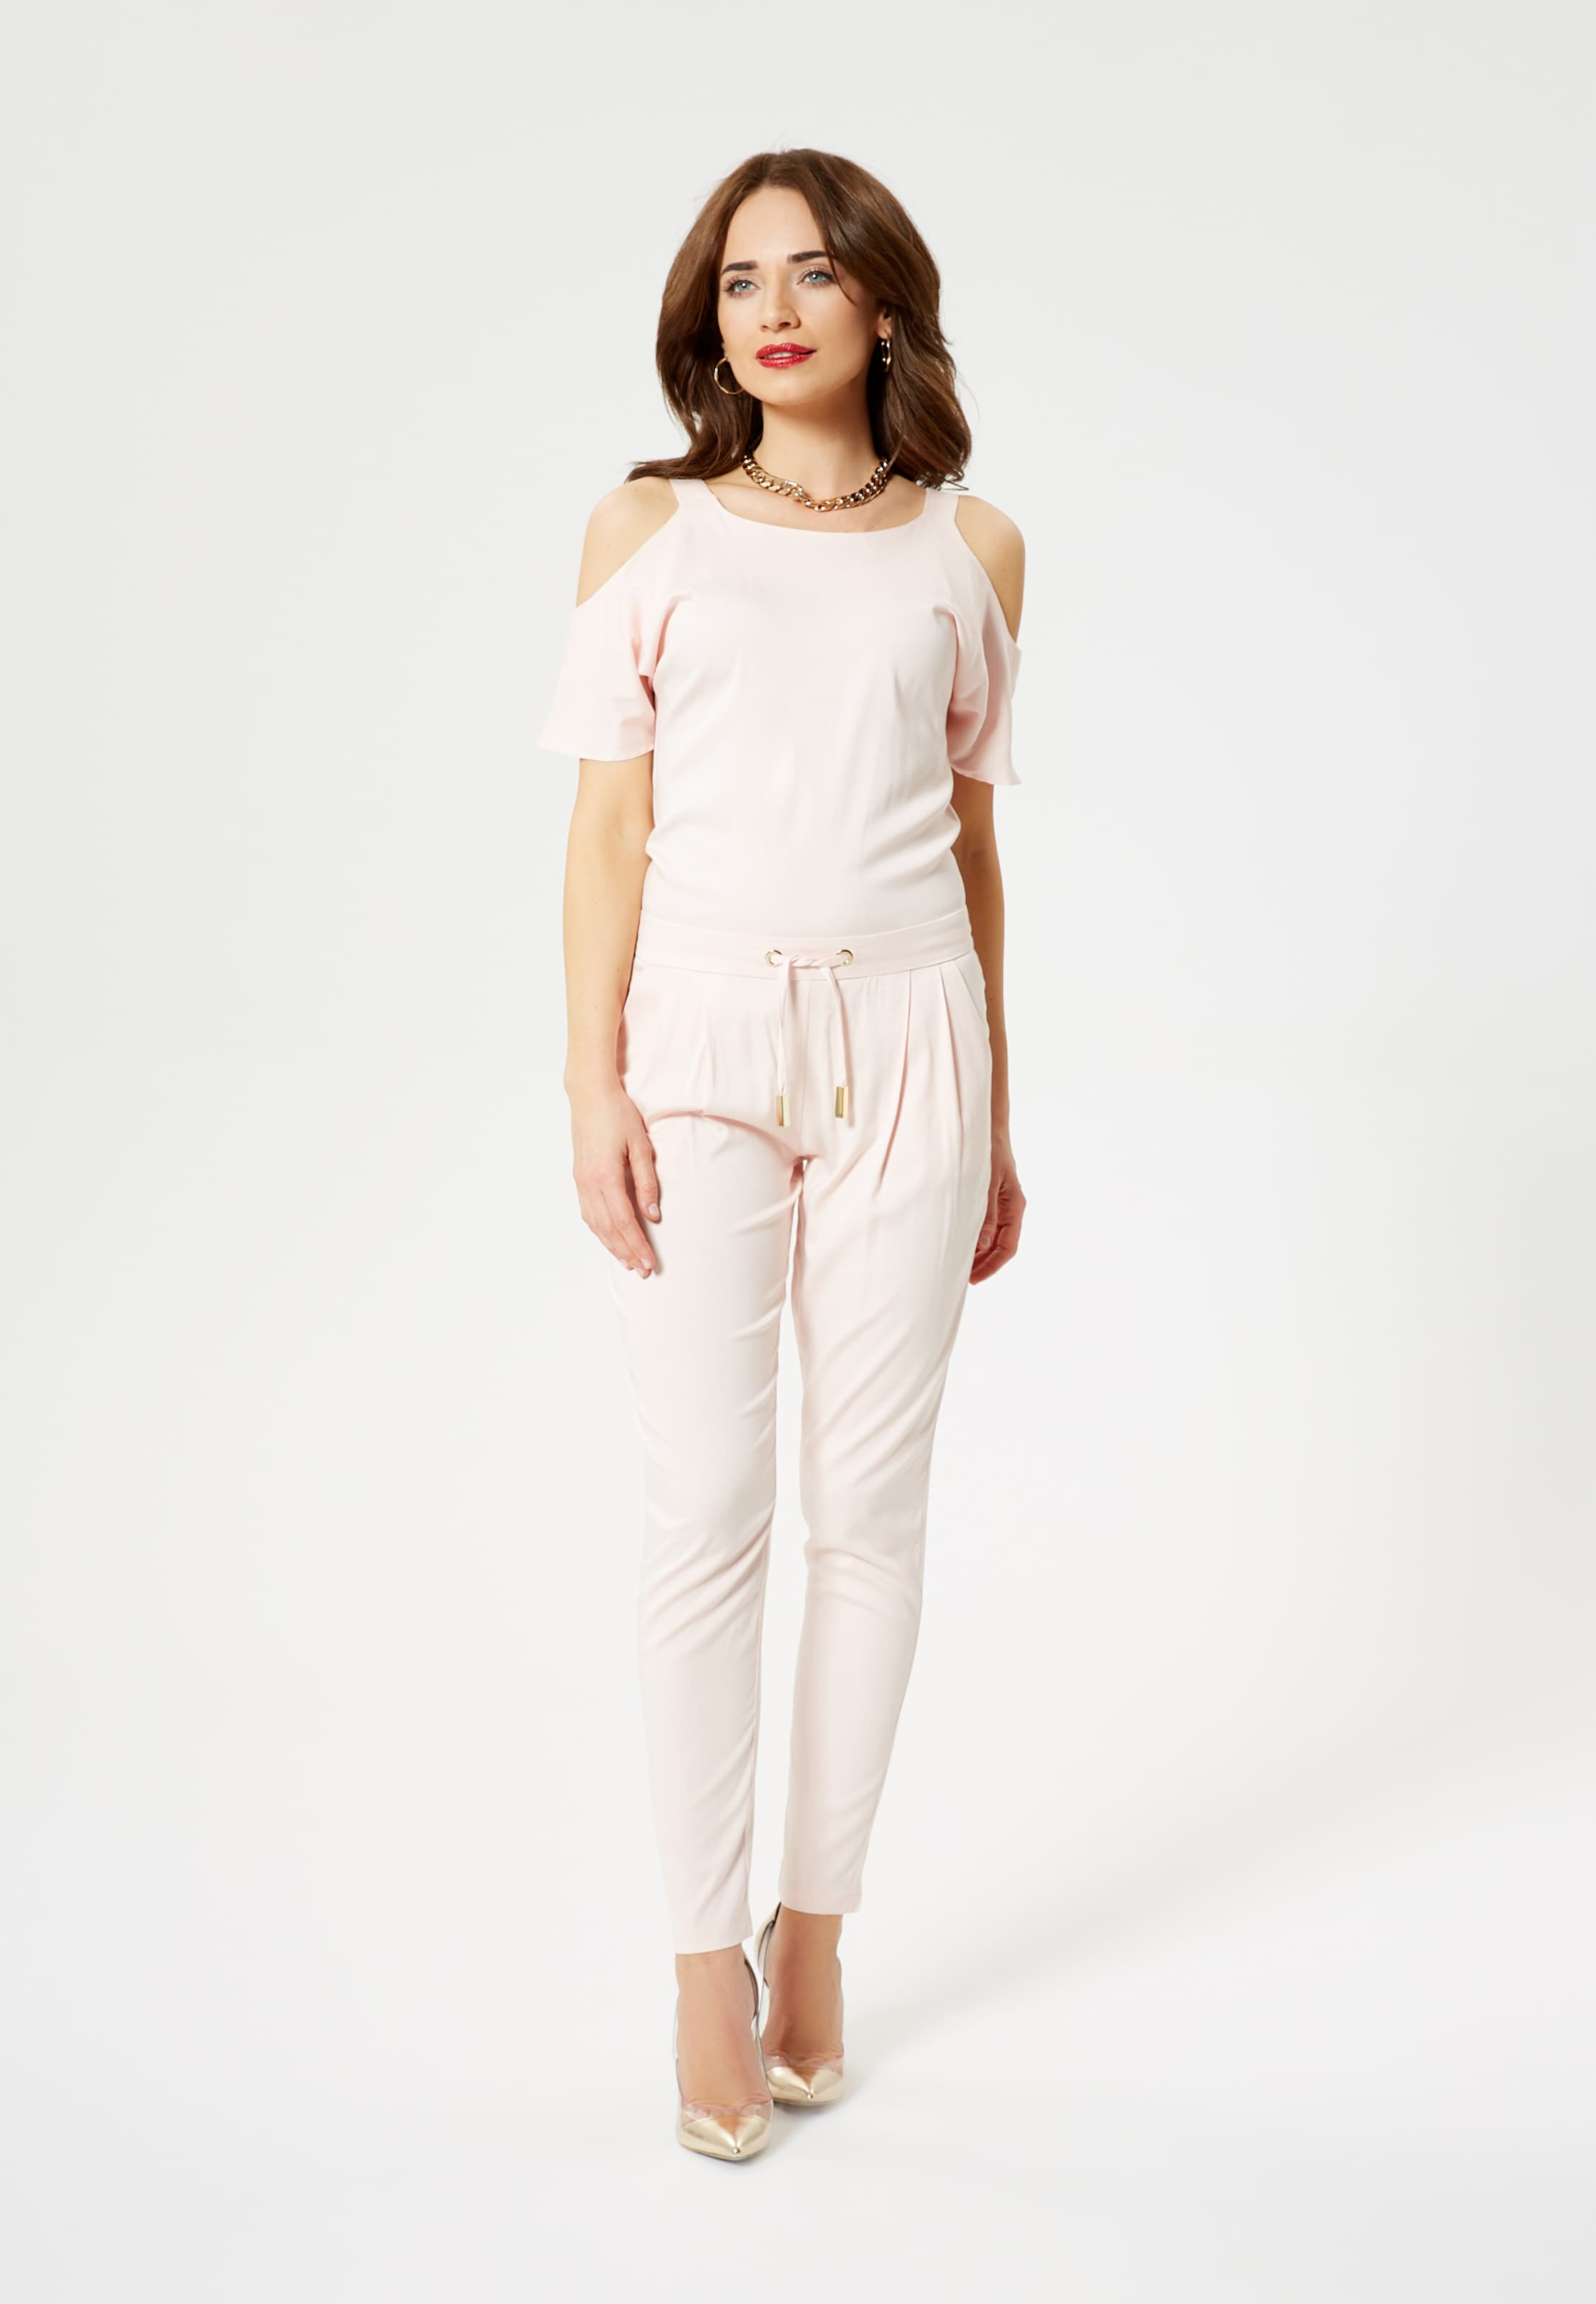 Faina Overall Faina Overall In Pastellpink Pastellpink In CrxsQohdtB